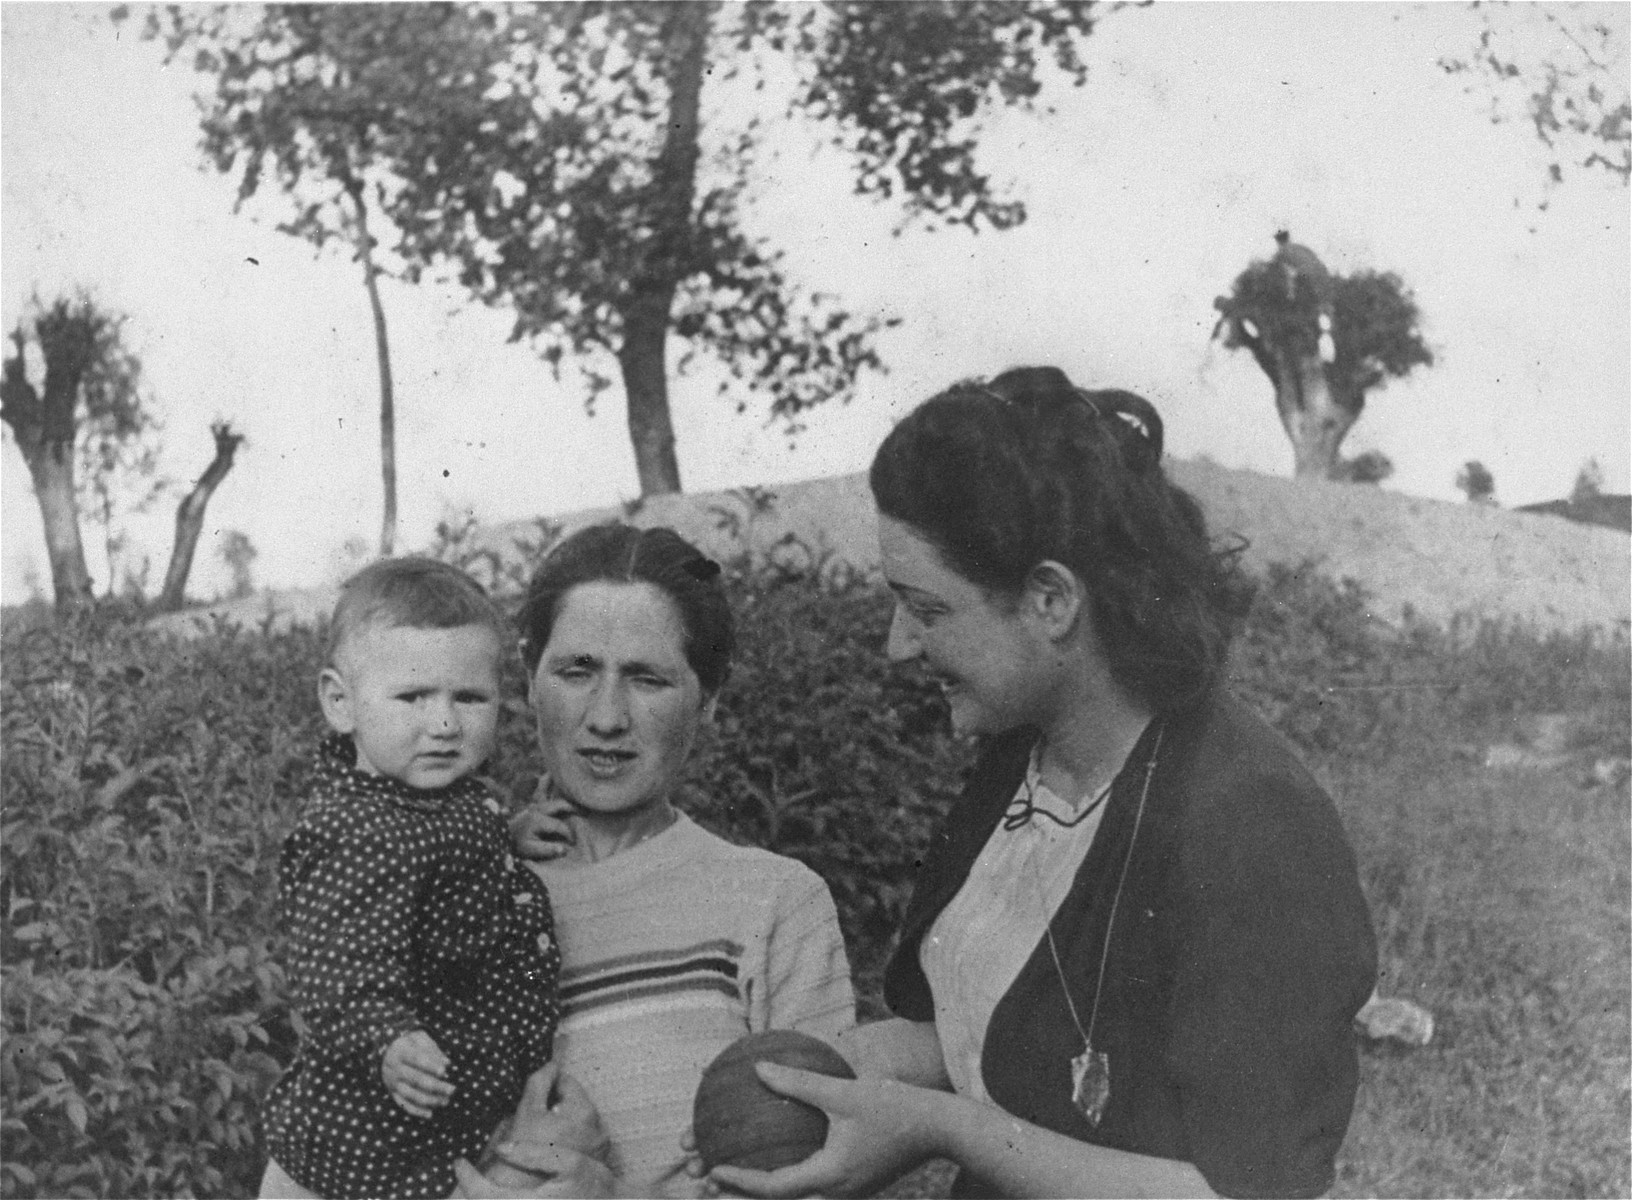 A young Jewish mother poses with her child and niece outside in a field.  Pictured from right to left are: Sabina Weinstock, her aunt, Hinda Eidenberg and Hinda's child. Hinda and her child later perished in the Trawniki concentration camp.